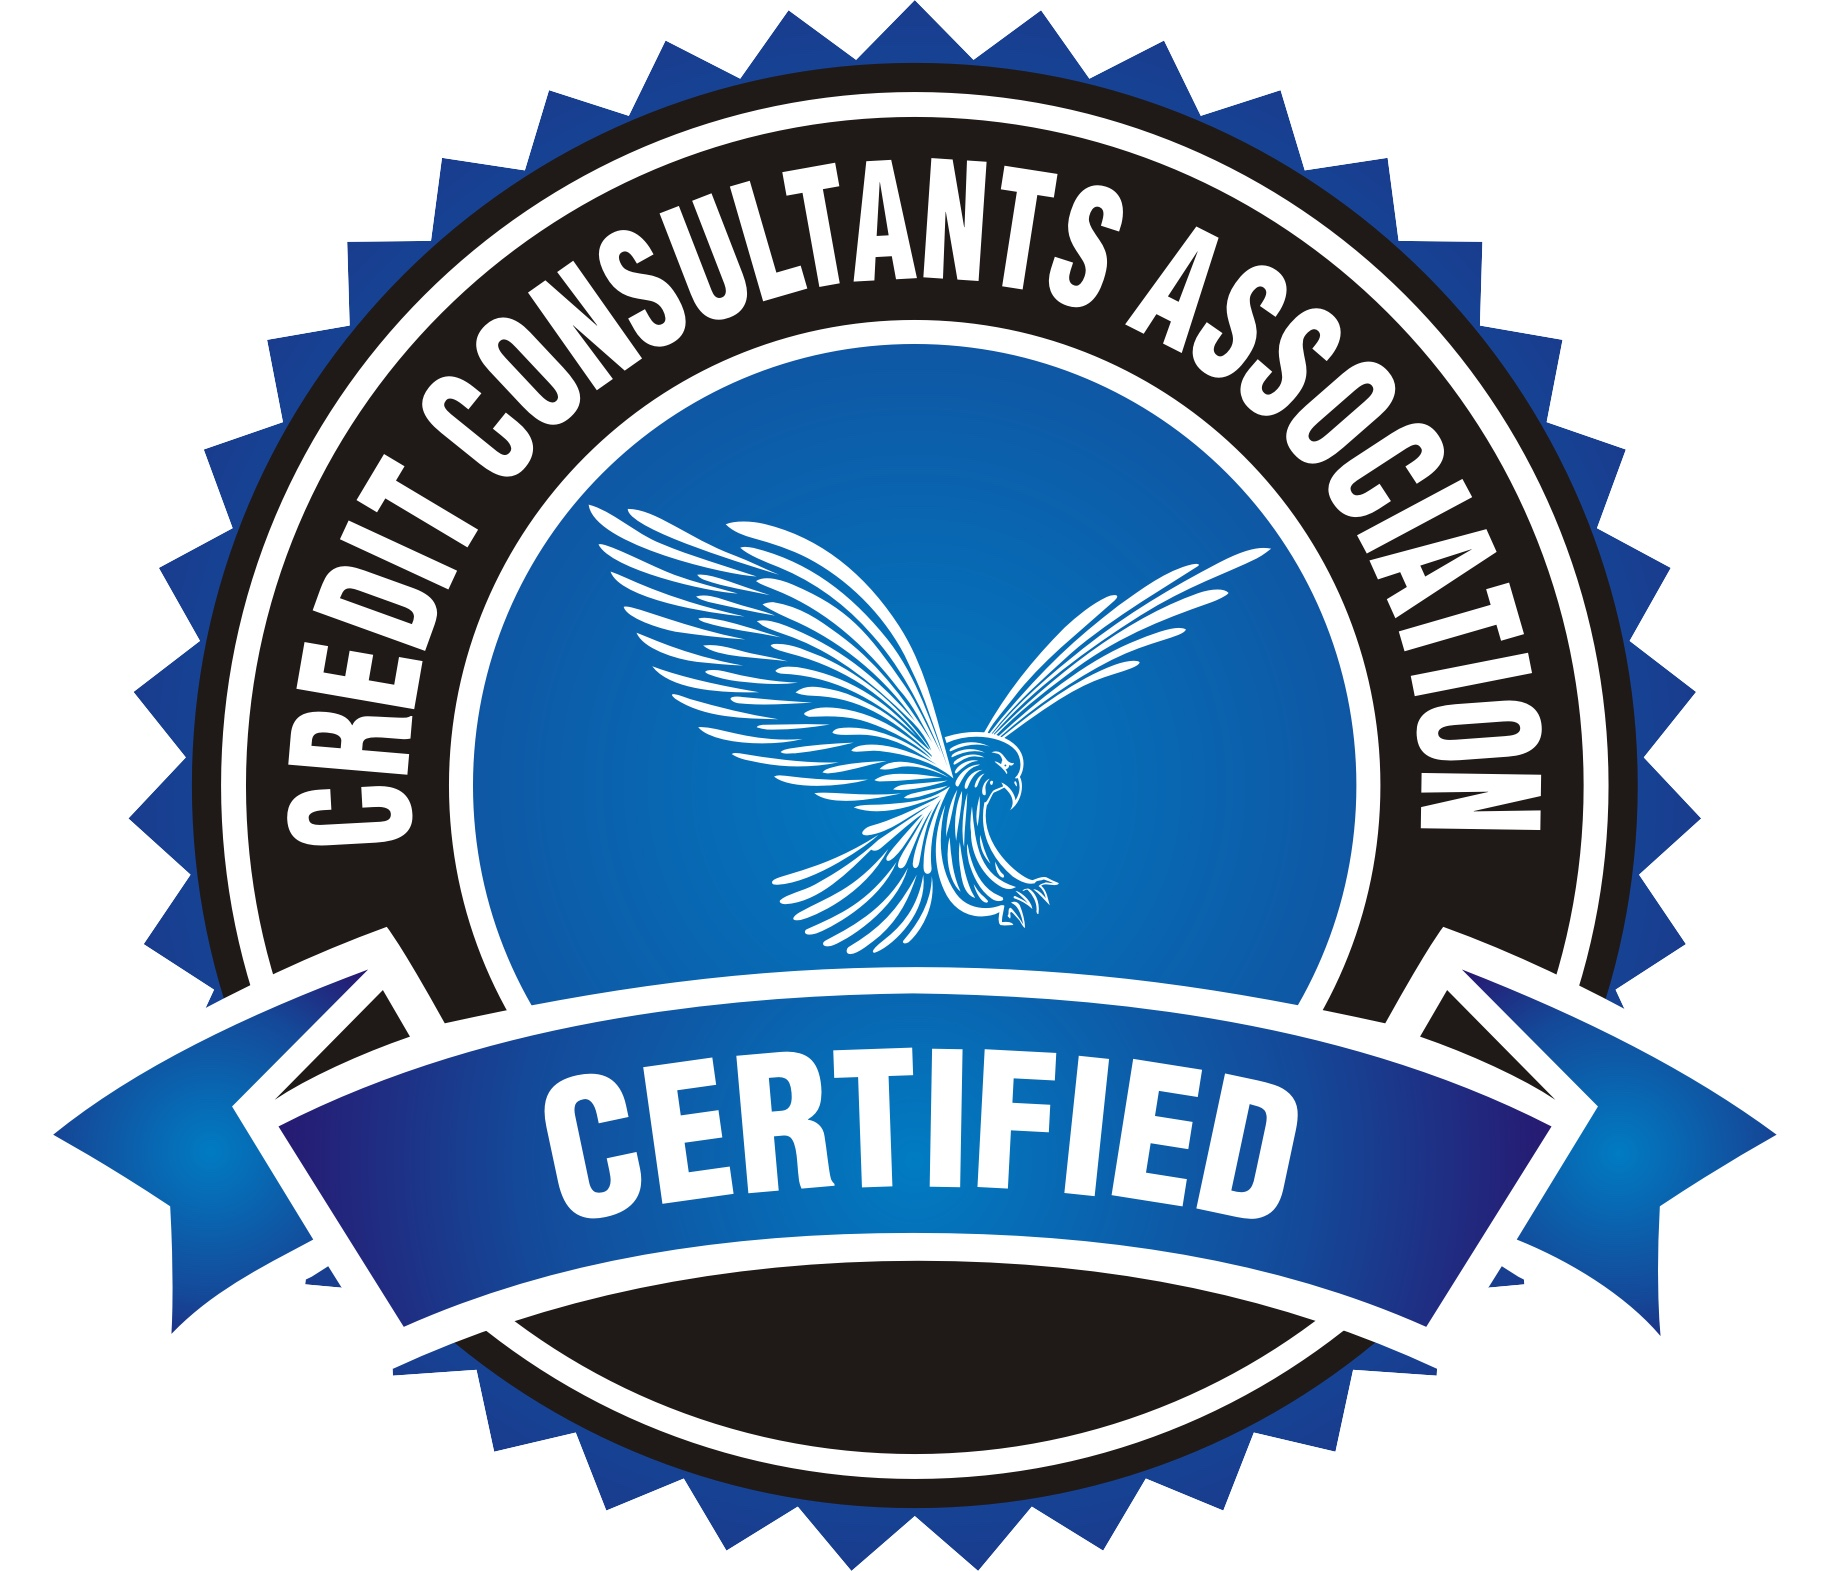 Every team member is a Board Certified Credit Specialist so you can feel comfortable knowing you are in good hands. We use factual disputing to challenge items under one of the federal consumer protections laws (FCRA, FDCPA, FACTA, FCBA, HIPAA, etc.). We will be your voice and communicate with the credit bureaus, collection agencies, and creditors on your behalf to ensure that your credit report is reporting with accurately within accordance of the law.